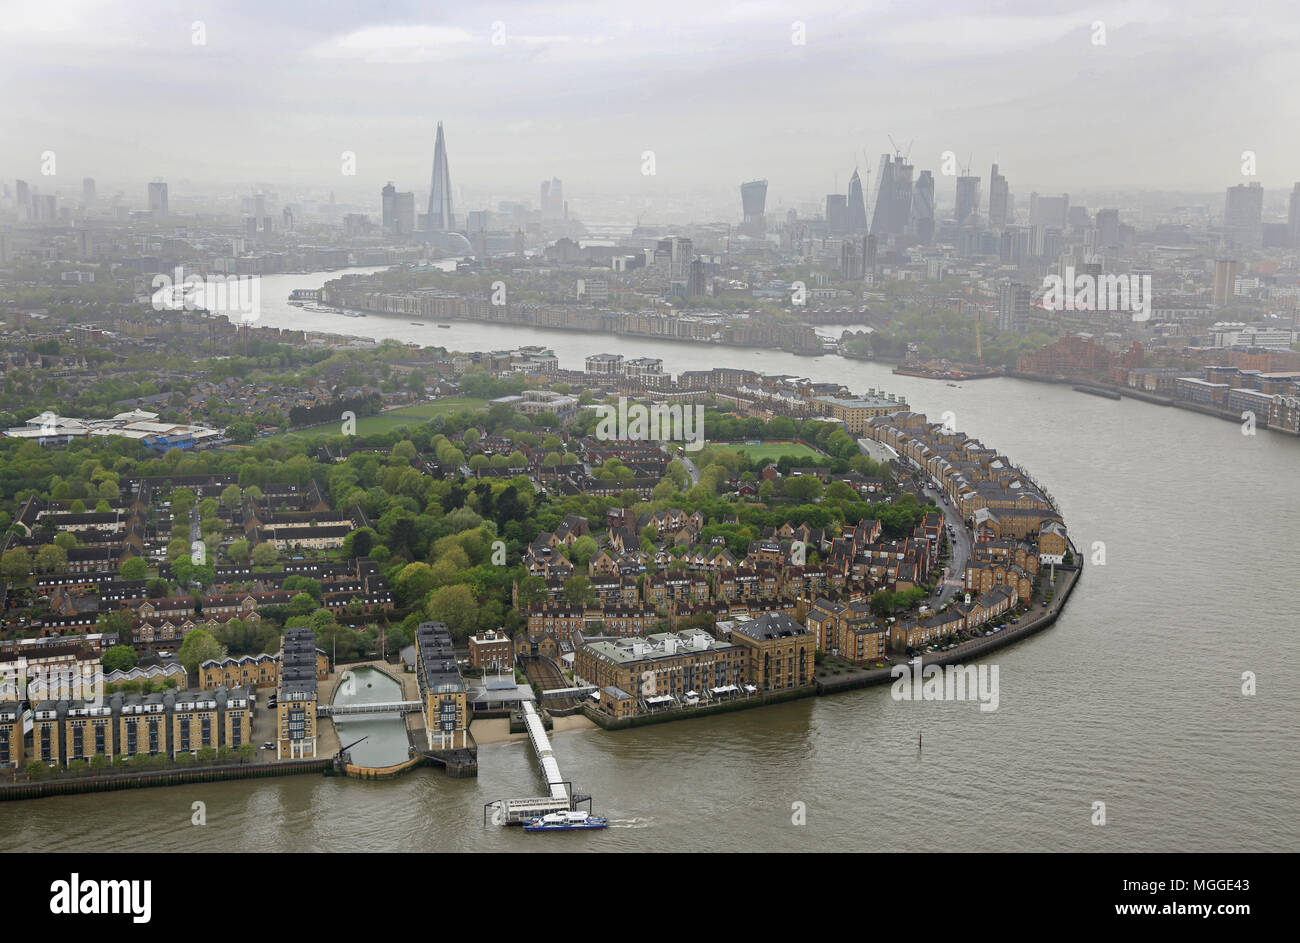 High level view of the River Thames from Canary Wharf looking towards the City of London. Overcast April morning. Shows Rotherhithe in foreground. - Stock Image